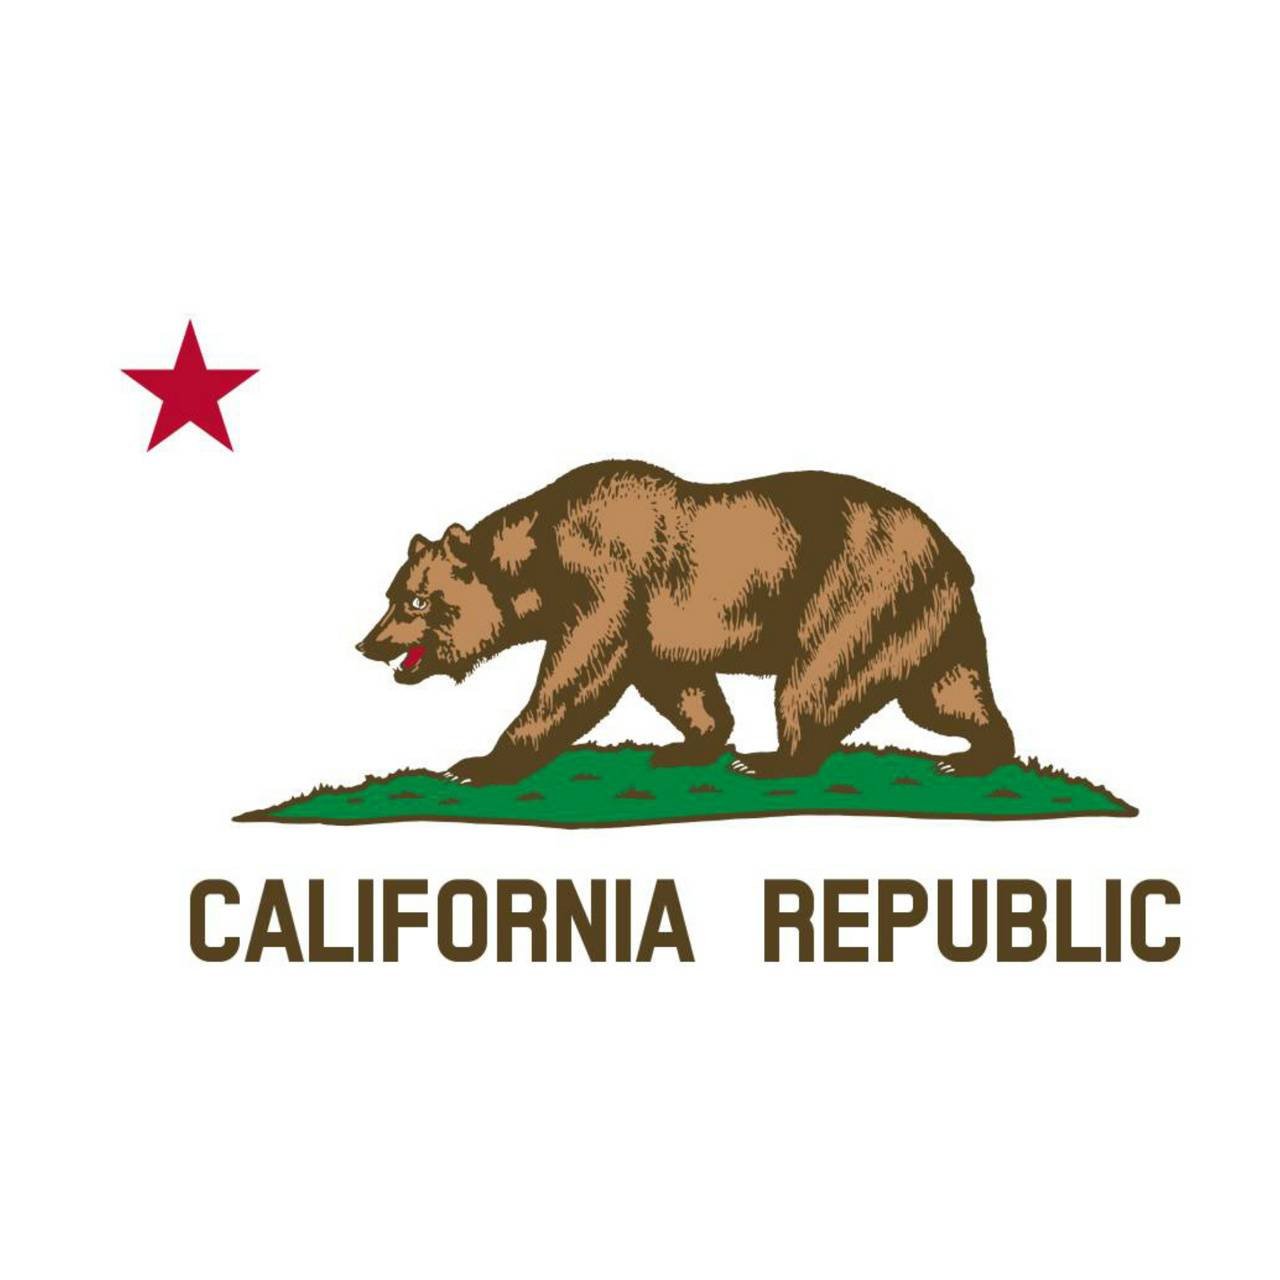 Californian Flag Wallpaper By Californian Camper 65 Free On Zedge